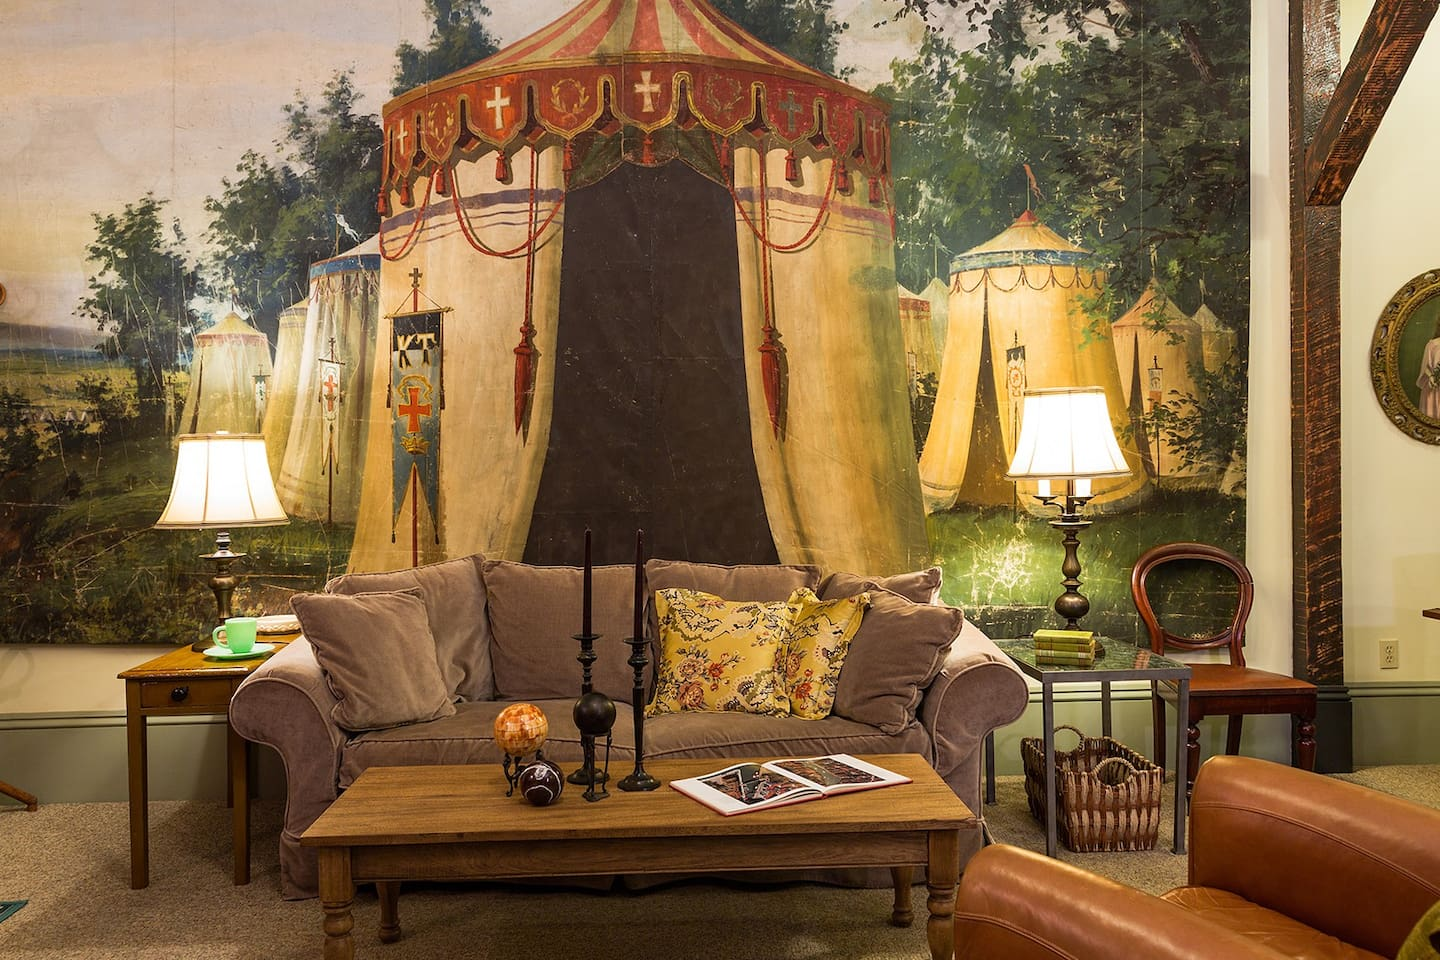 River House New Orleans - Garden Apt. - Guesthouses for Rent in New ...